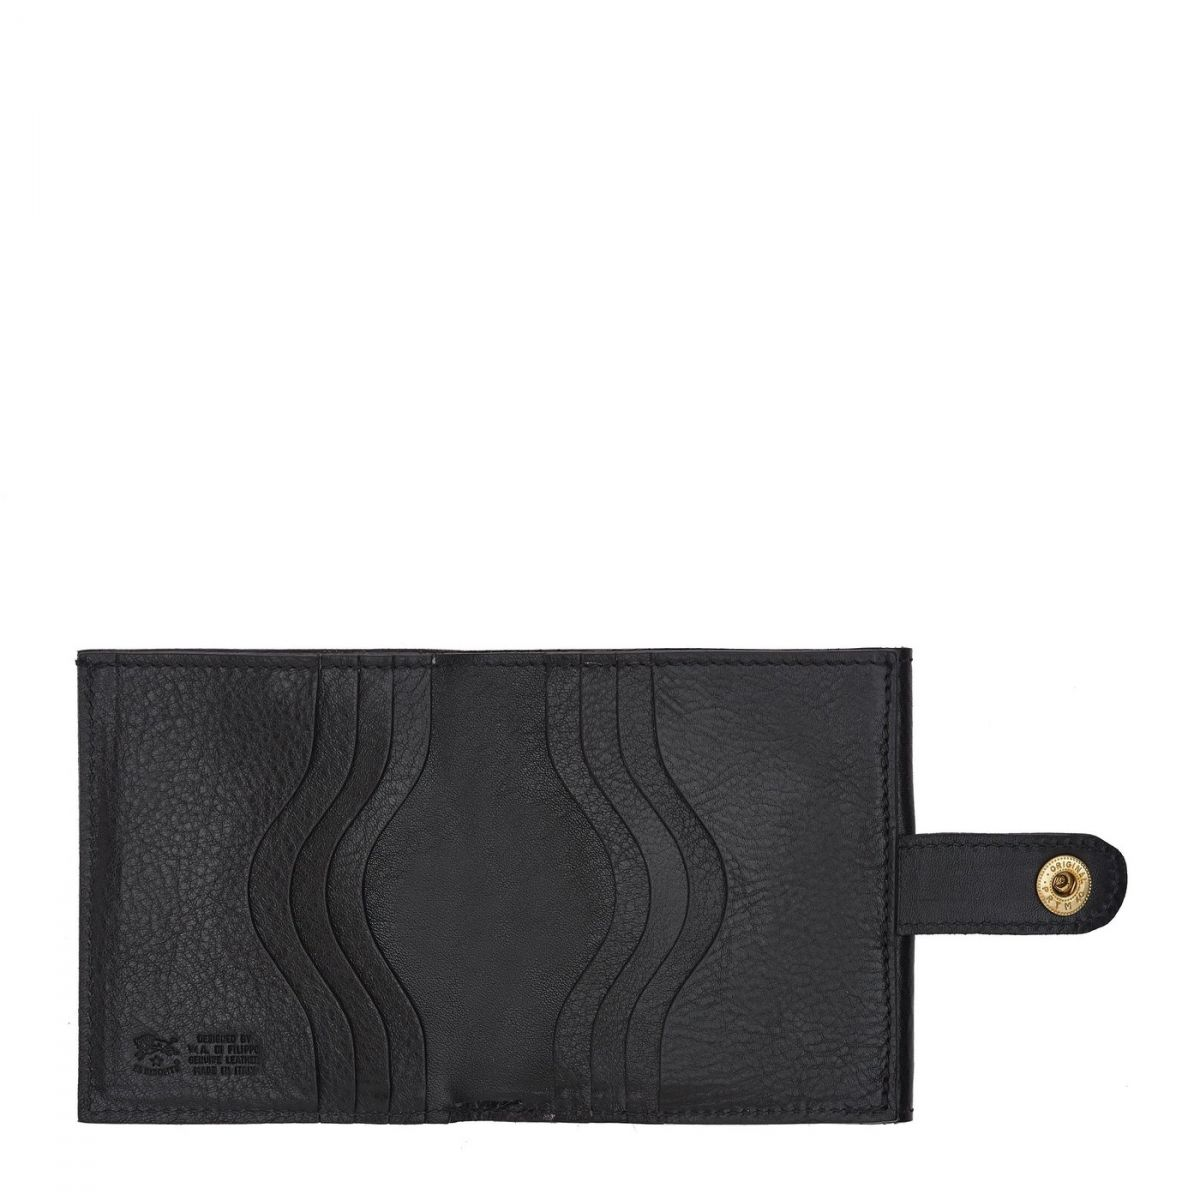 Men's Bi-Fold Wallet  in Cowhide Double Leather SBW030 color Black | Details